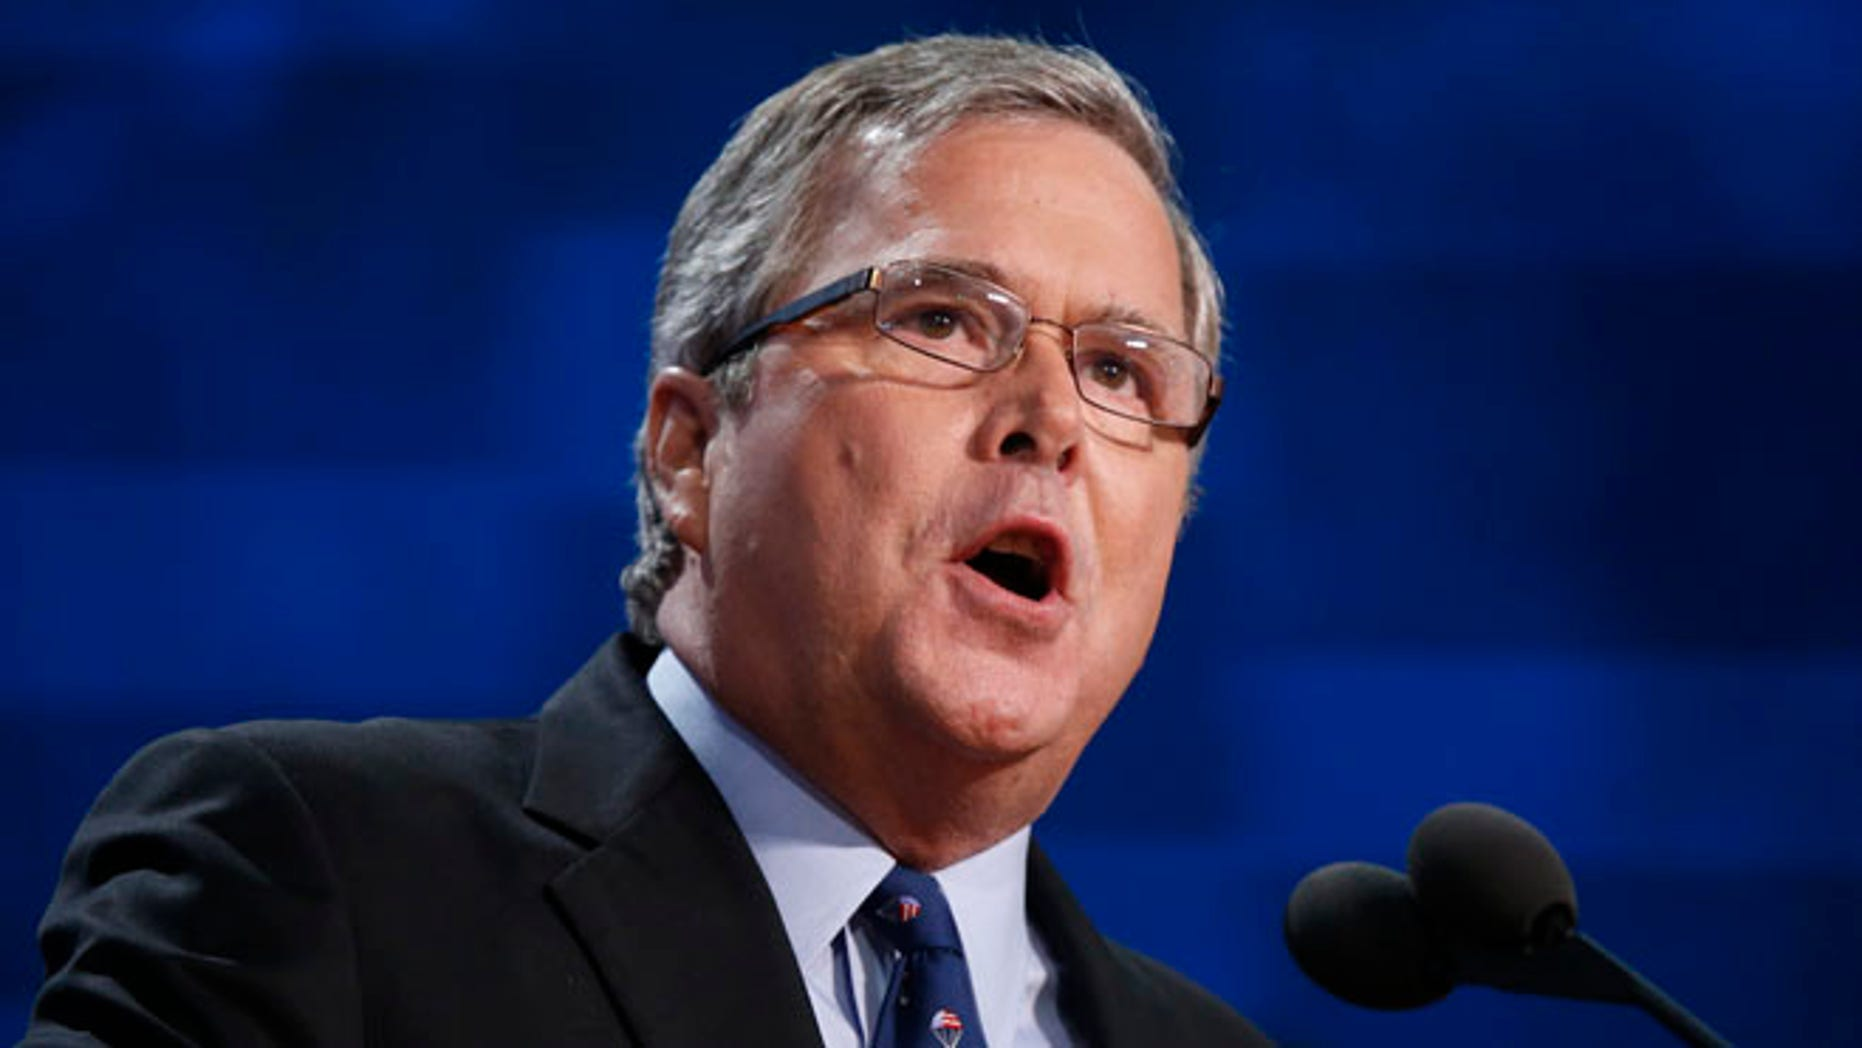 Aug. 30, 2012: Former Florida Governor Jeb Bush addresses the Republican National Convention in Tampa, Fla.